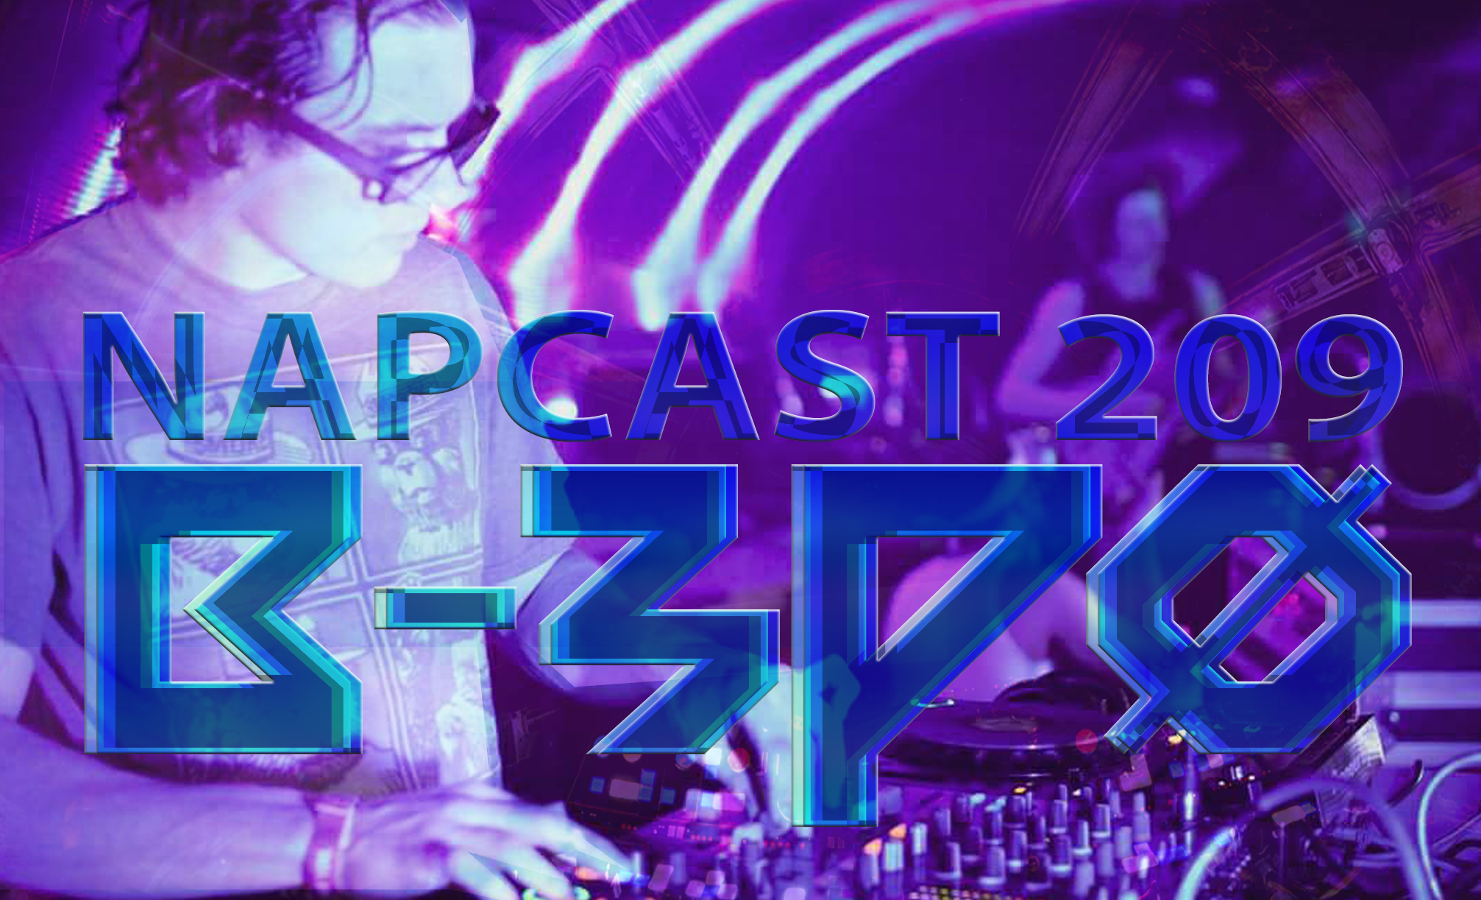 [Mix] NAP DNB presents NAPCast 209 - B-3P0